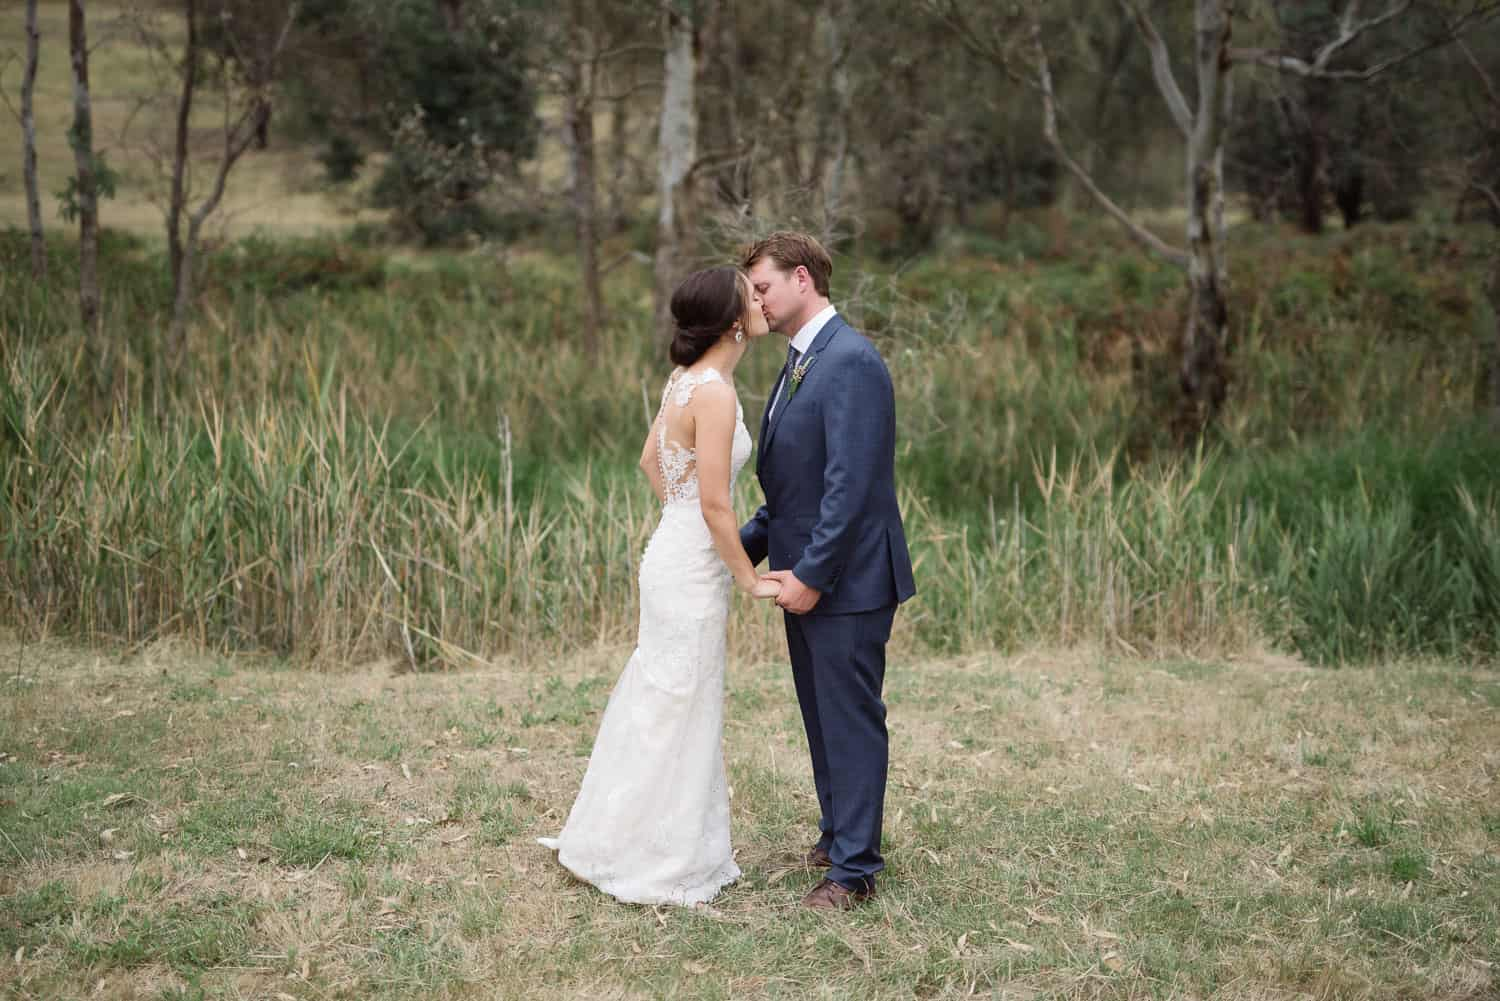 First kiss at a Mt Sturgeon homestead wedding